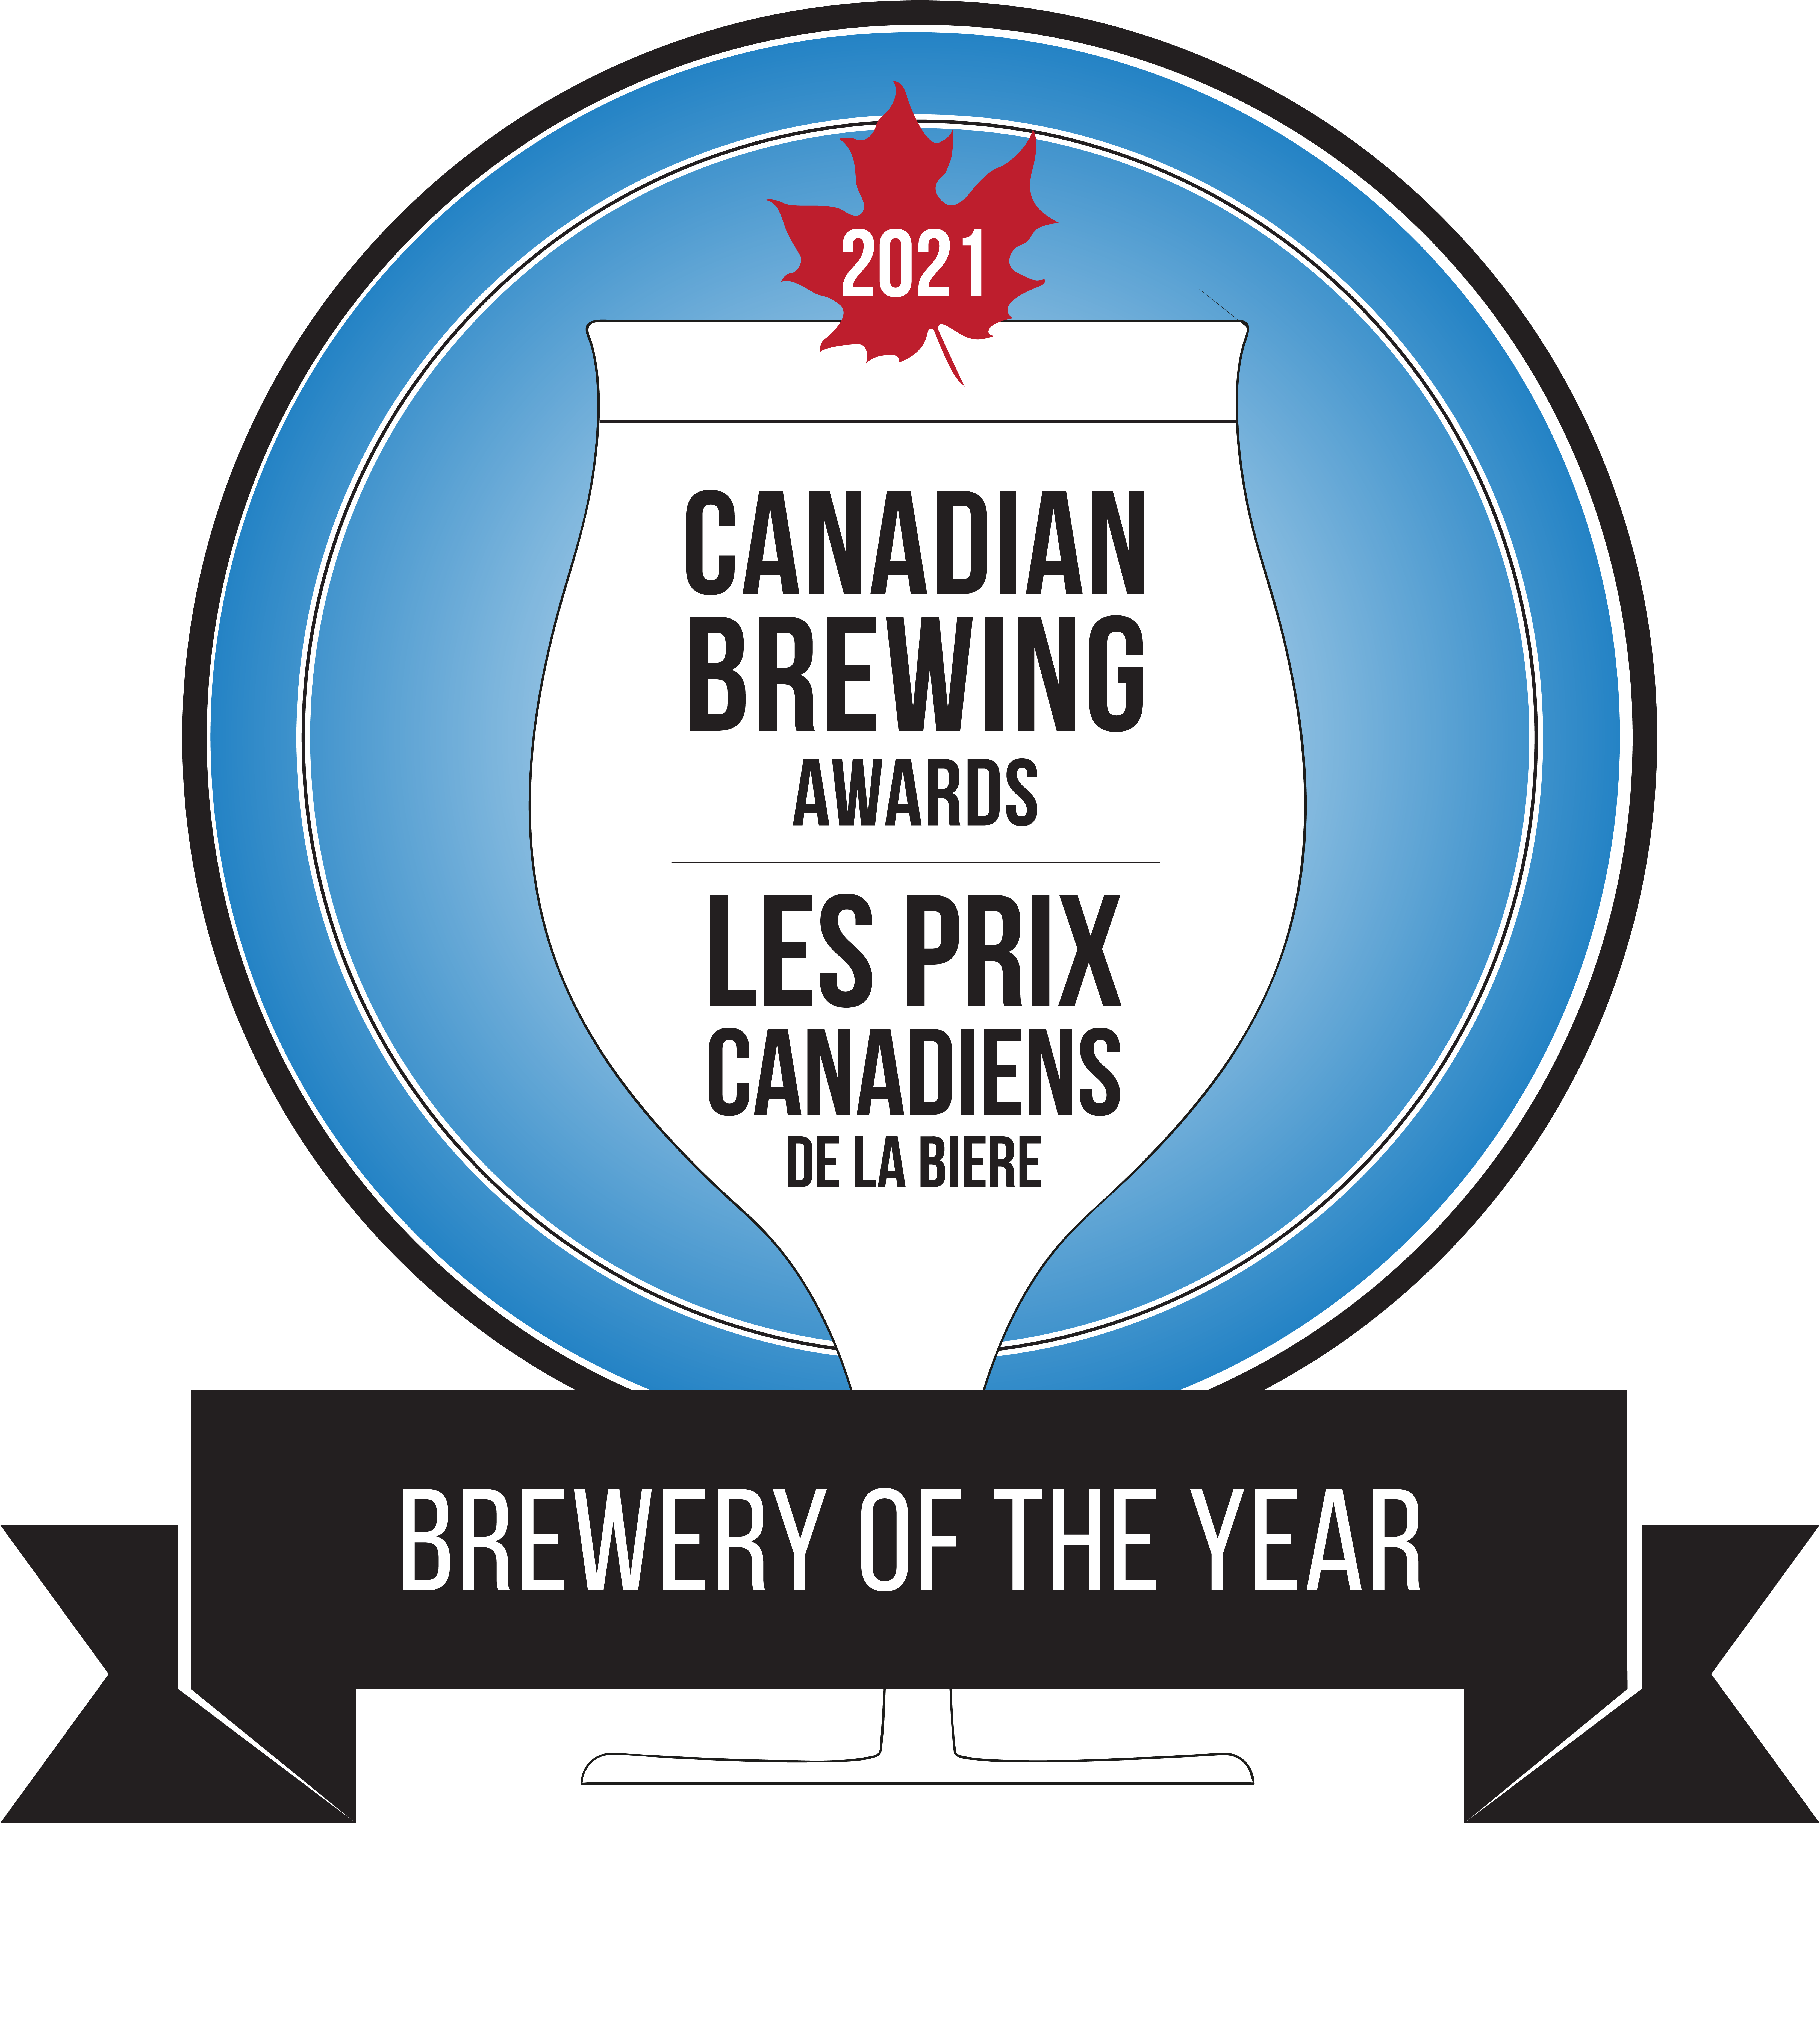 Brewery of the Year 2021